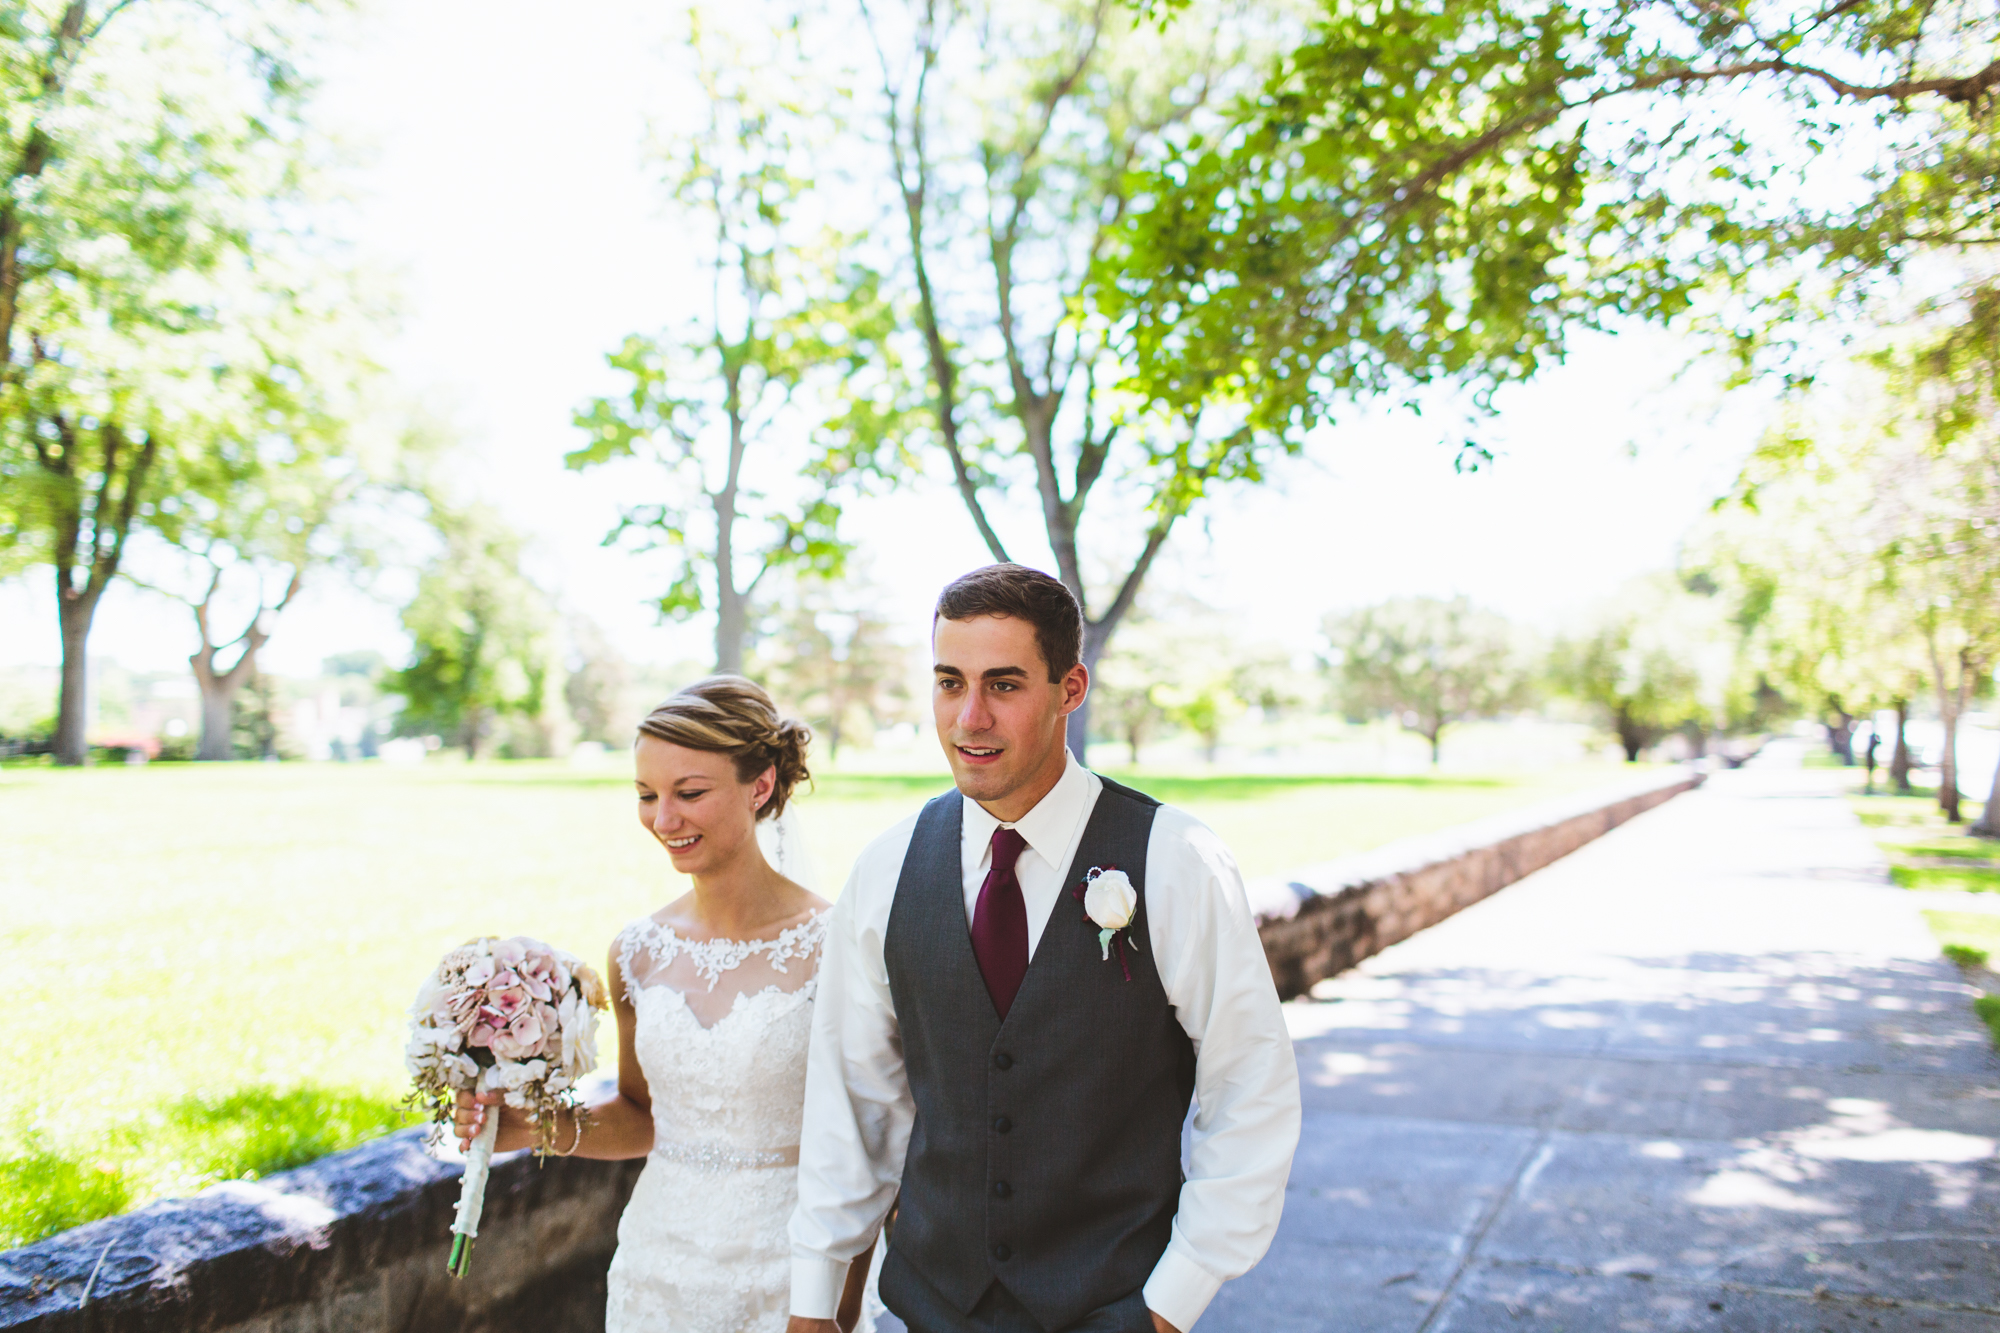 JOSH + ASHLEY |  PIERRE, SD   WEDDING